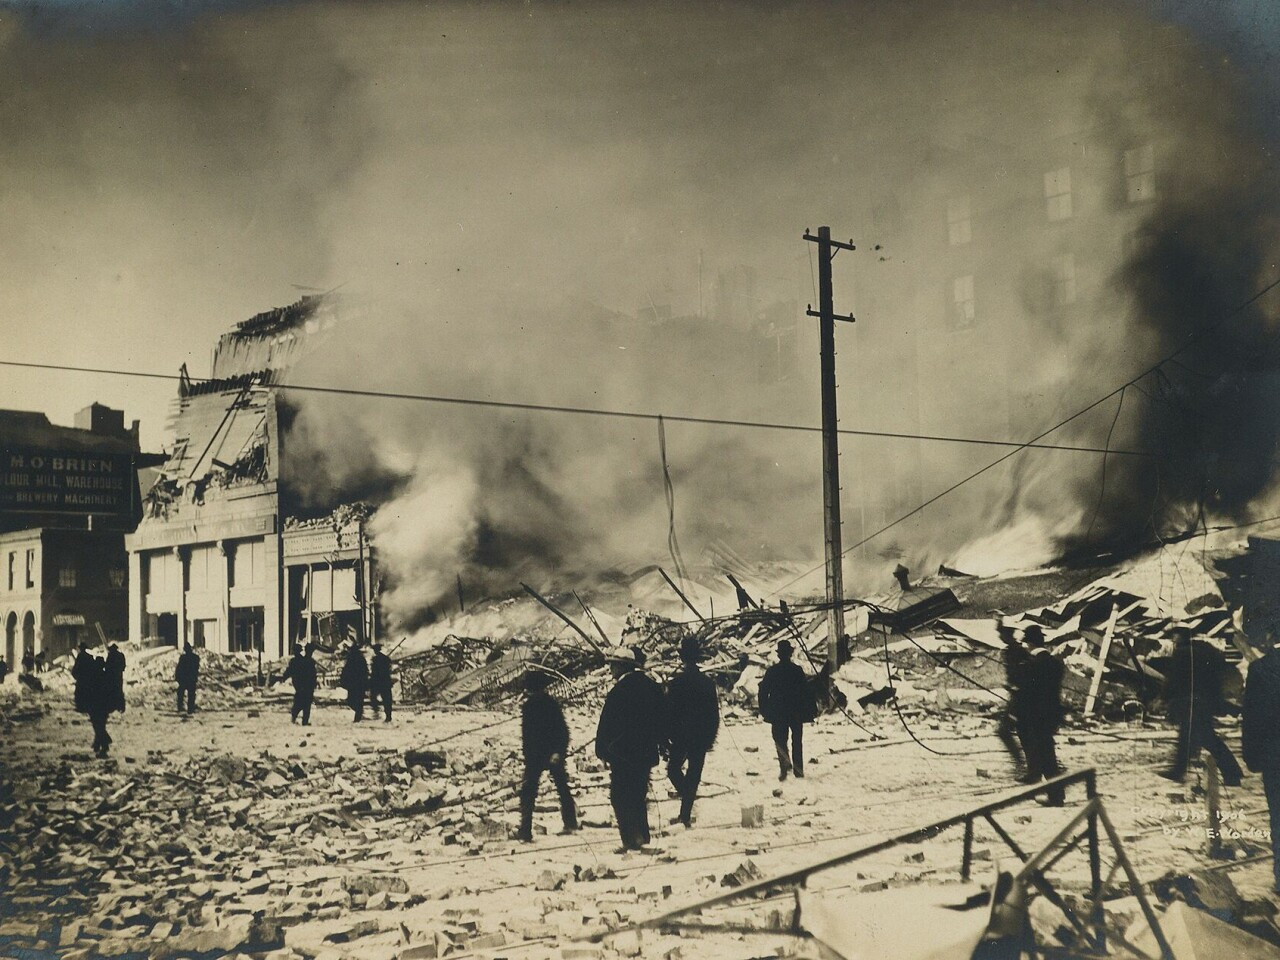 Images from 1906 San Francisco earthquake